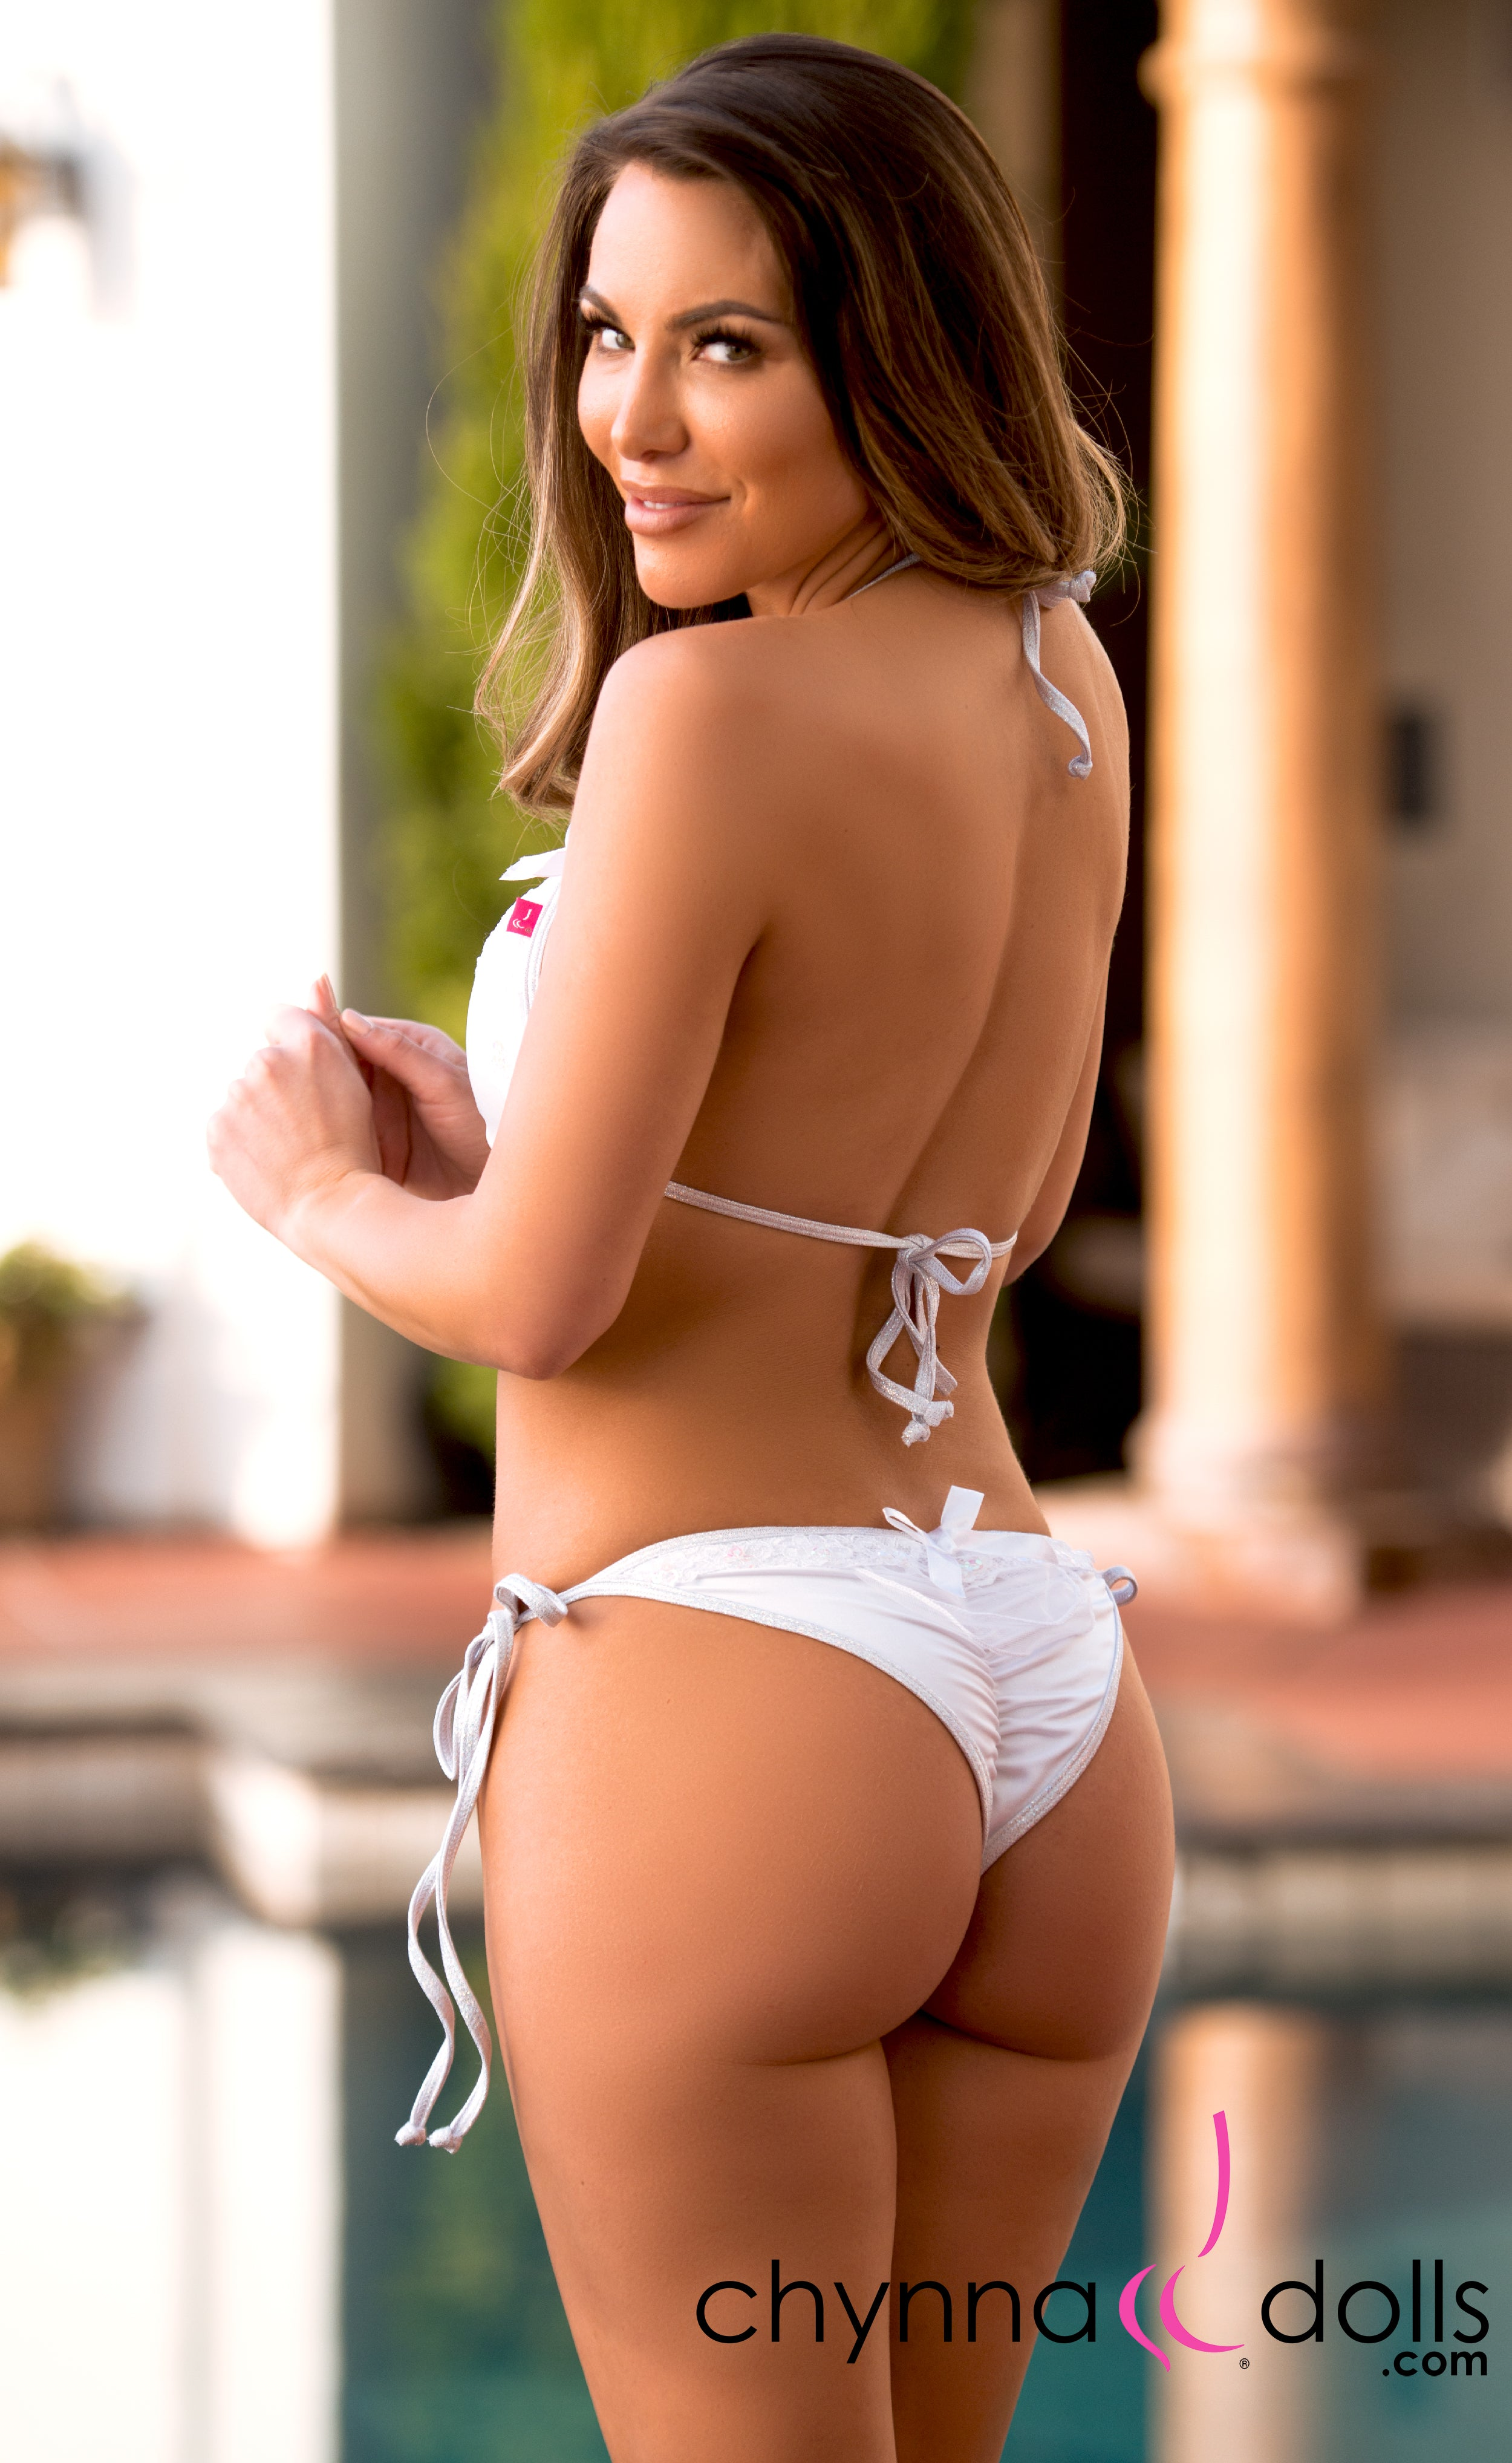 Serres: String Swimsuit in White w/ White Sequin Lace and Shimmer Trim - Chynna Dolls